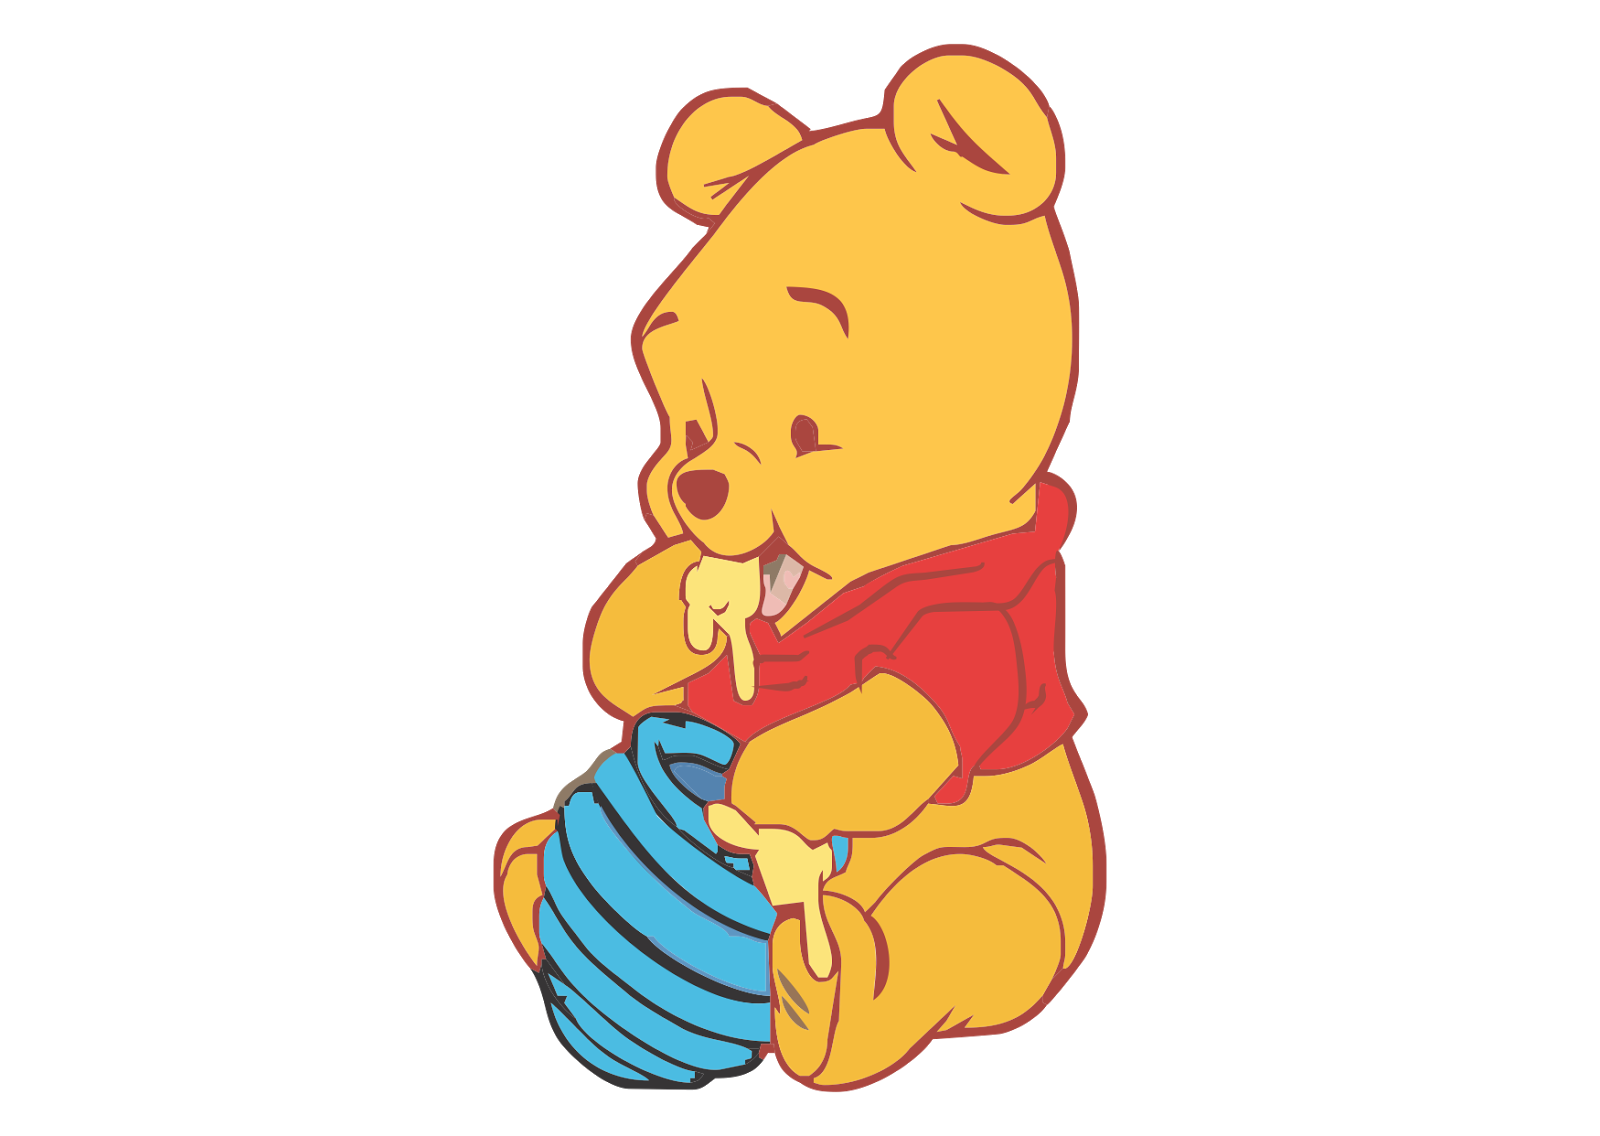 Winnie The Pooh - Baby PNG Image - PurePNG | Free ...